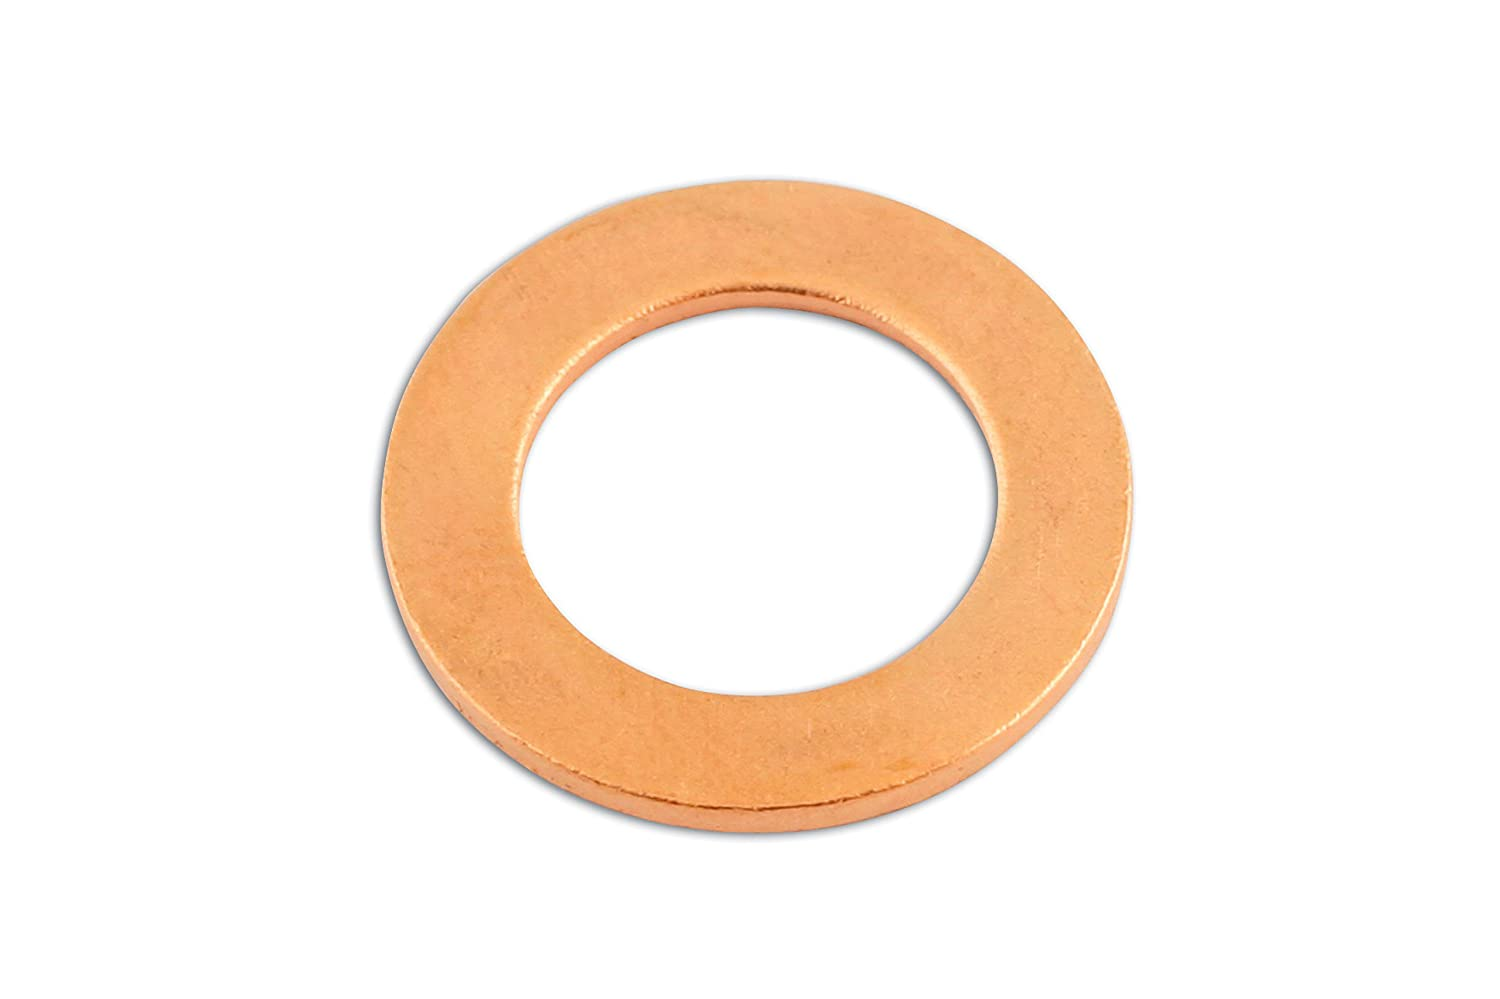 Connect 31831 M10 x 16 x 1mm Copper Sealing Washer The Tool Connection Ltd.